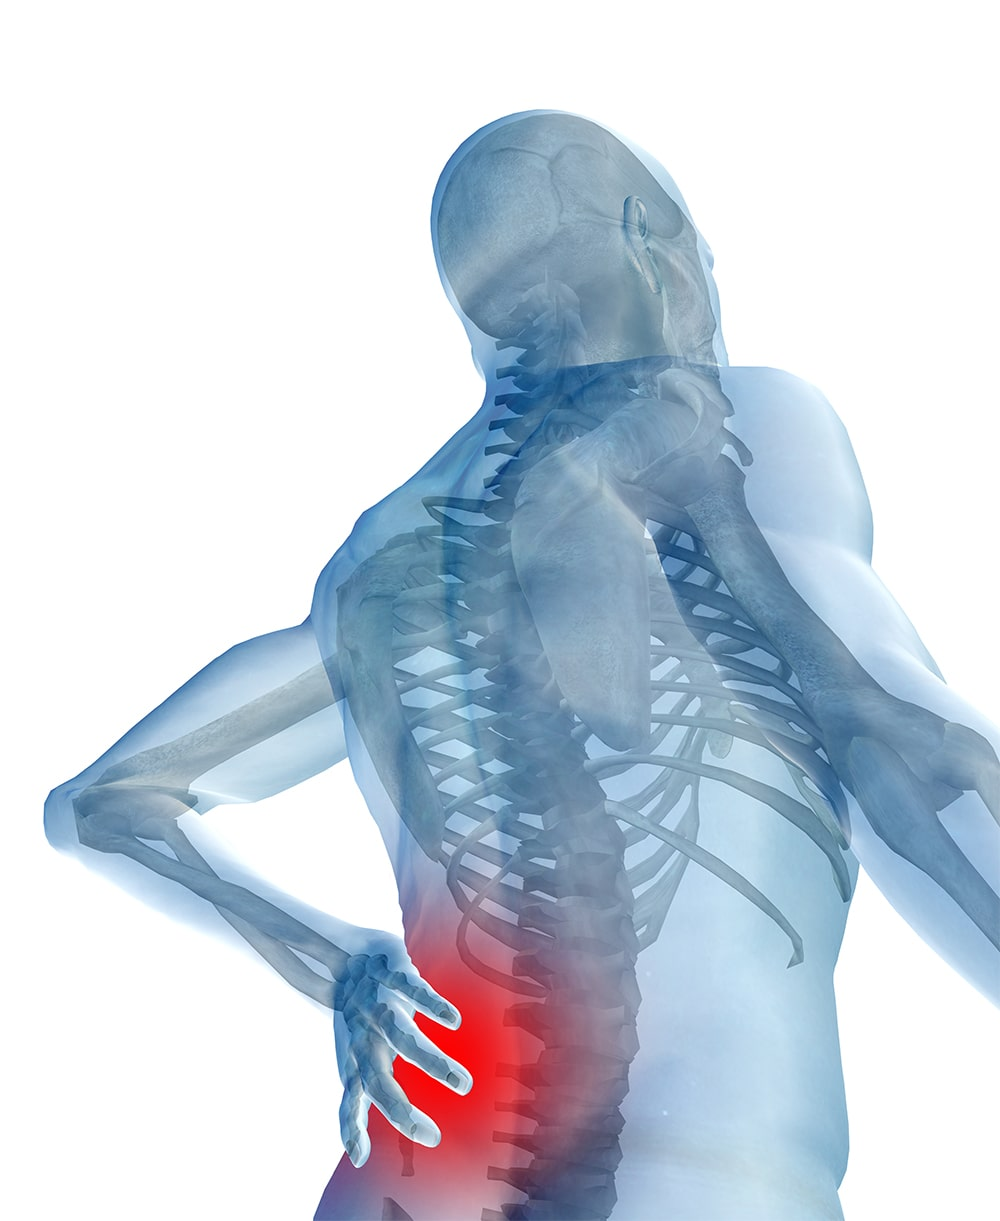 For lower backpain